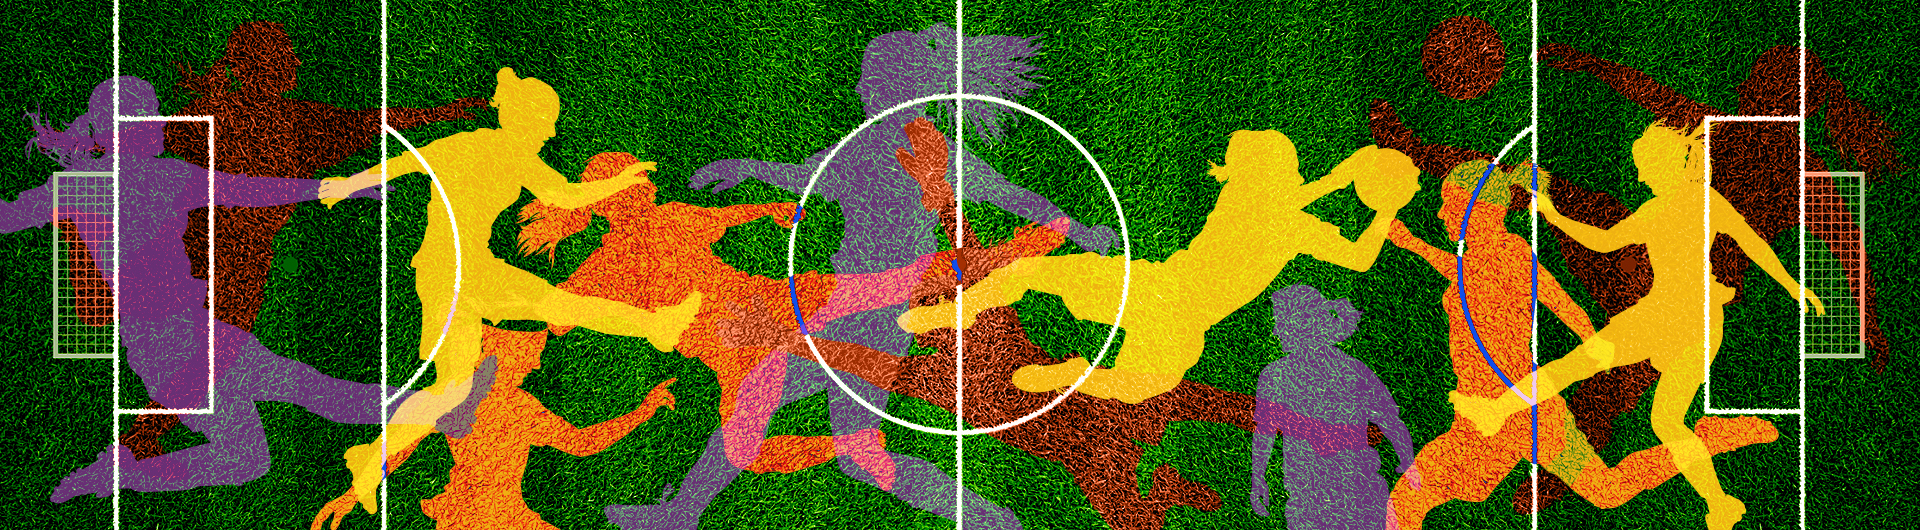 Female soccer players in vibrant colors